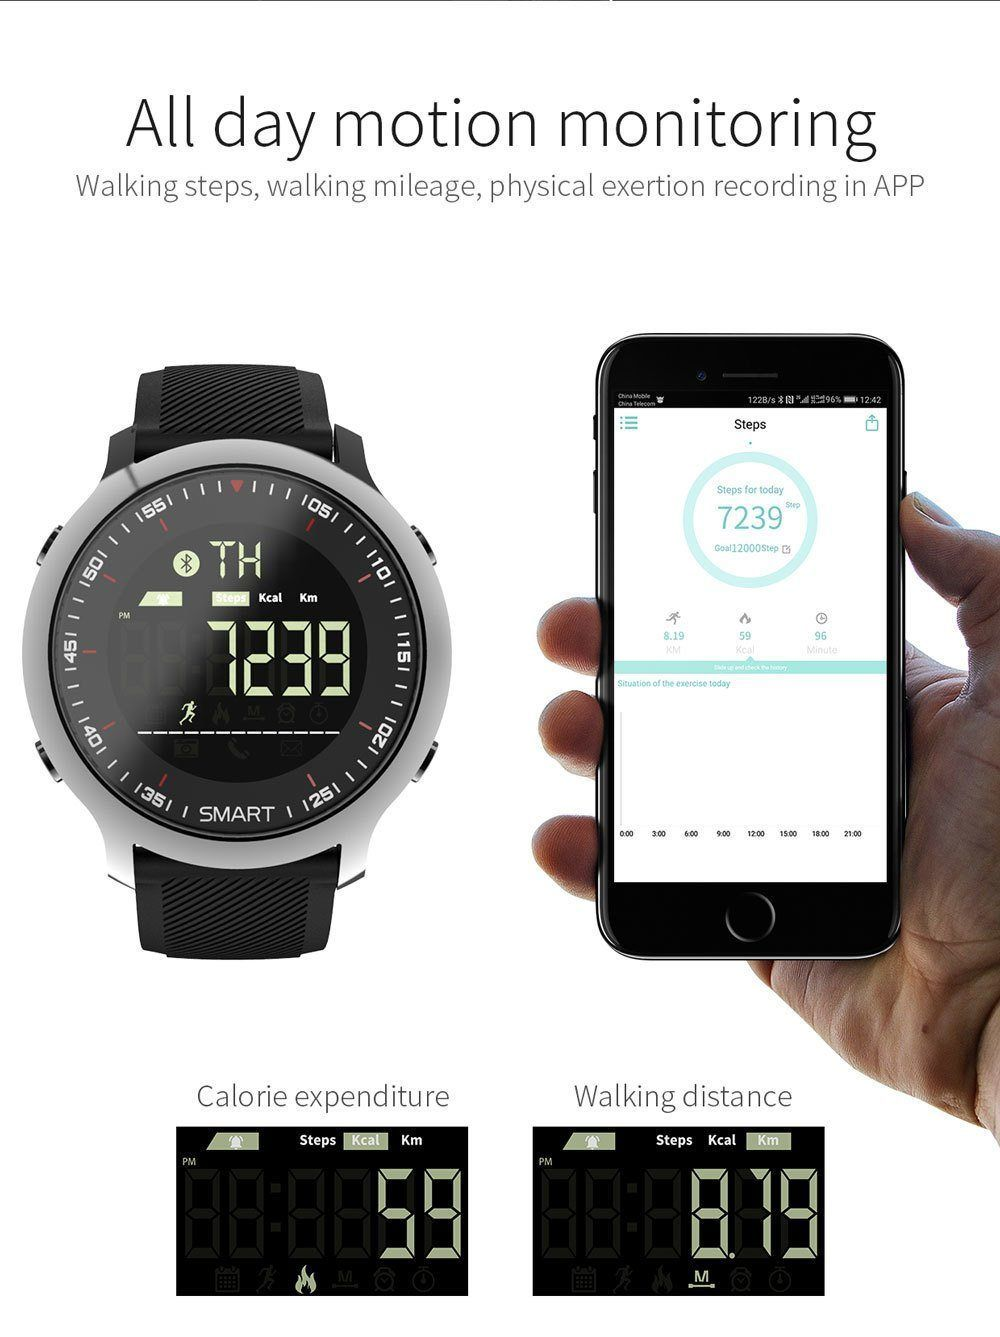 New Ip67 Waterproof Smartwatch Support Call And Sms Alert Sports Activities Tracker Wristwatch For Ios Android Phones Smart Watch Top Smart Watches Activity Tracker